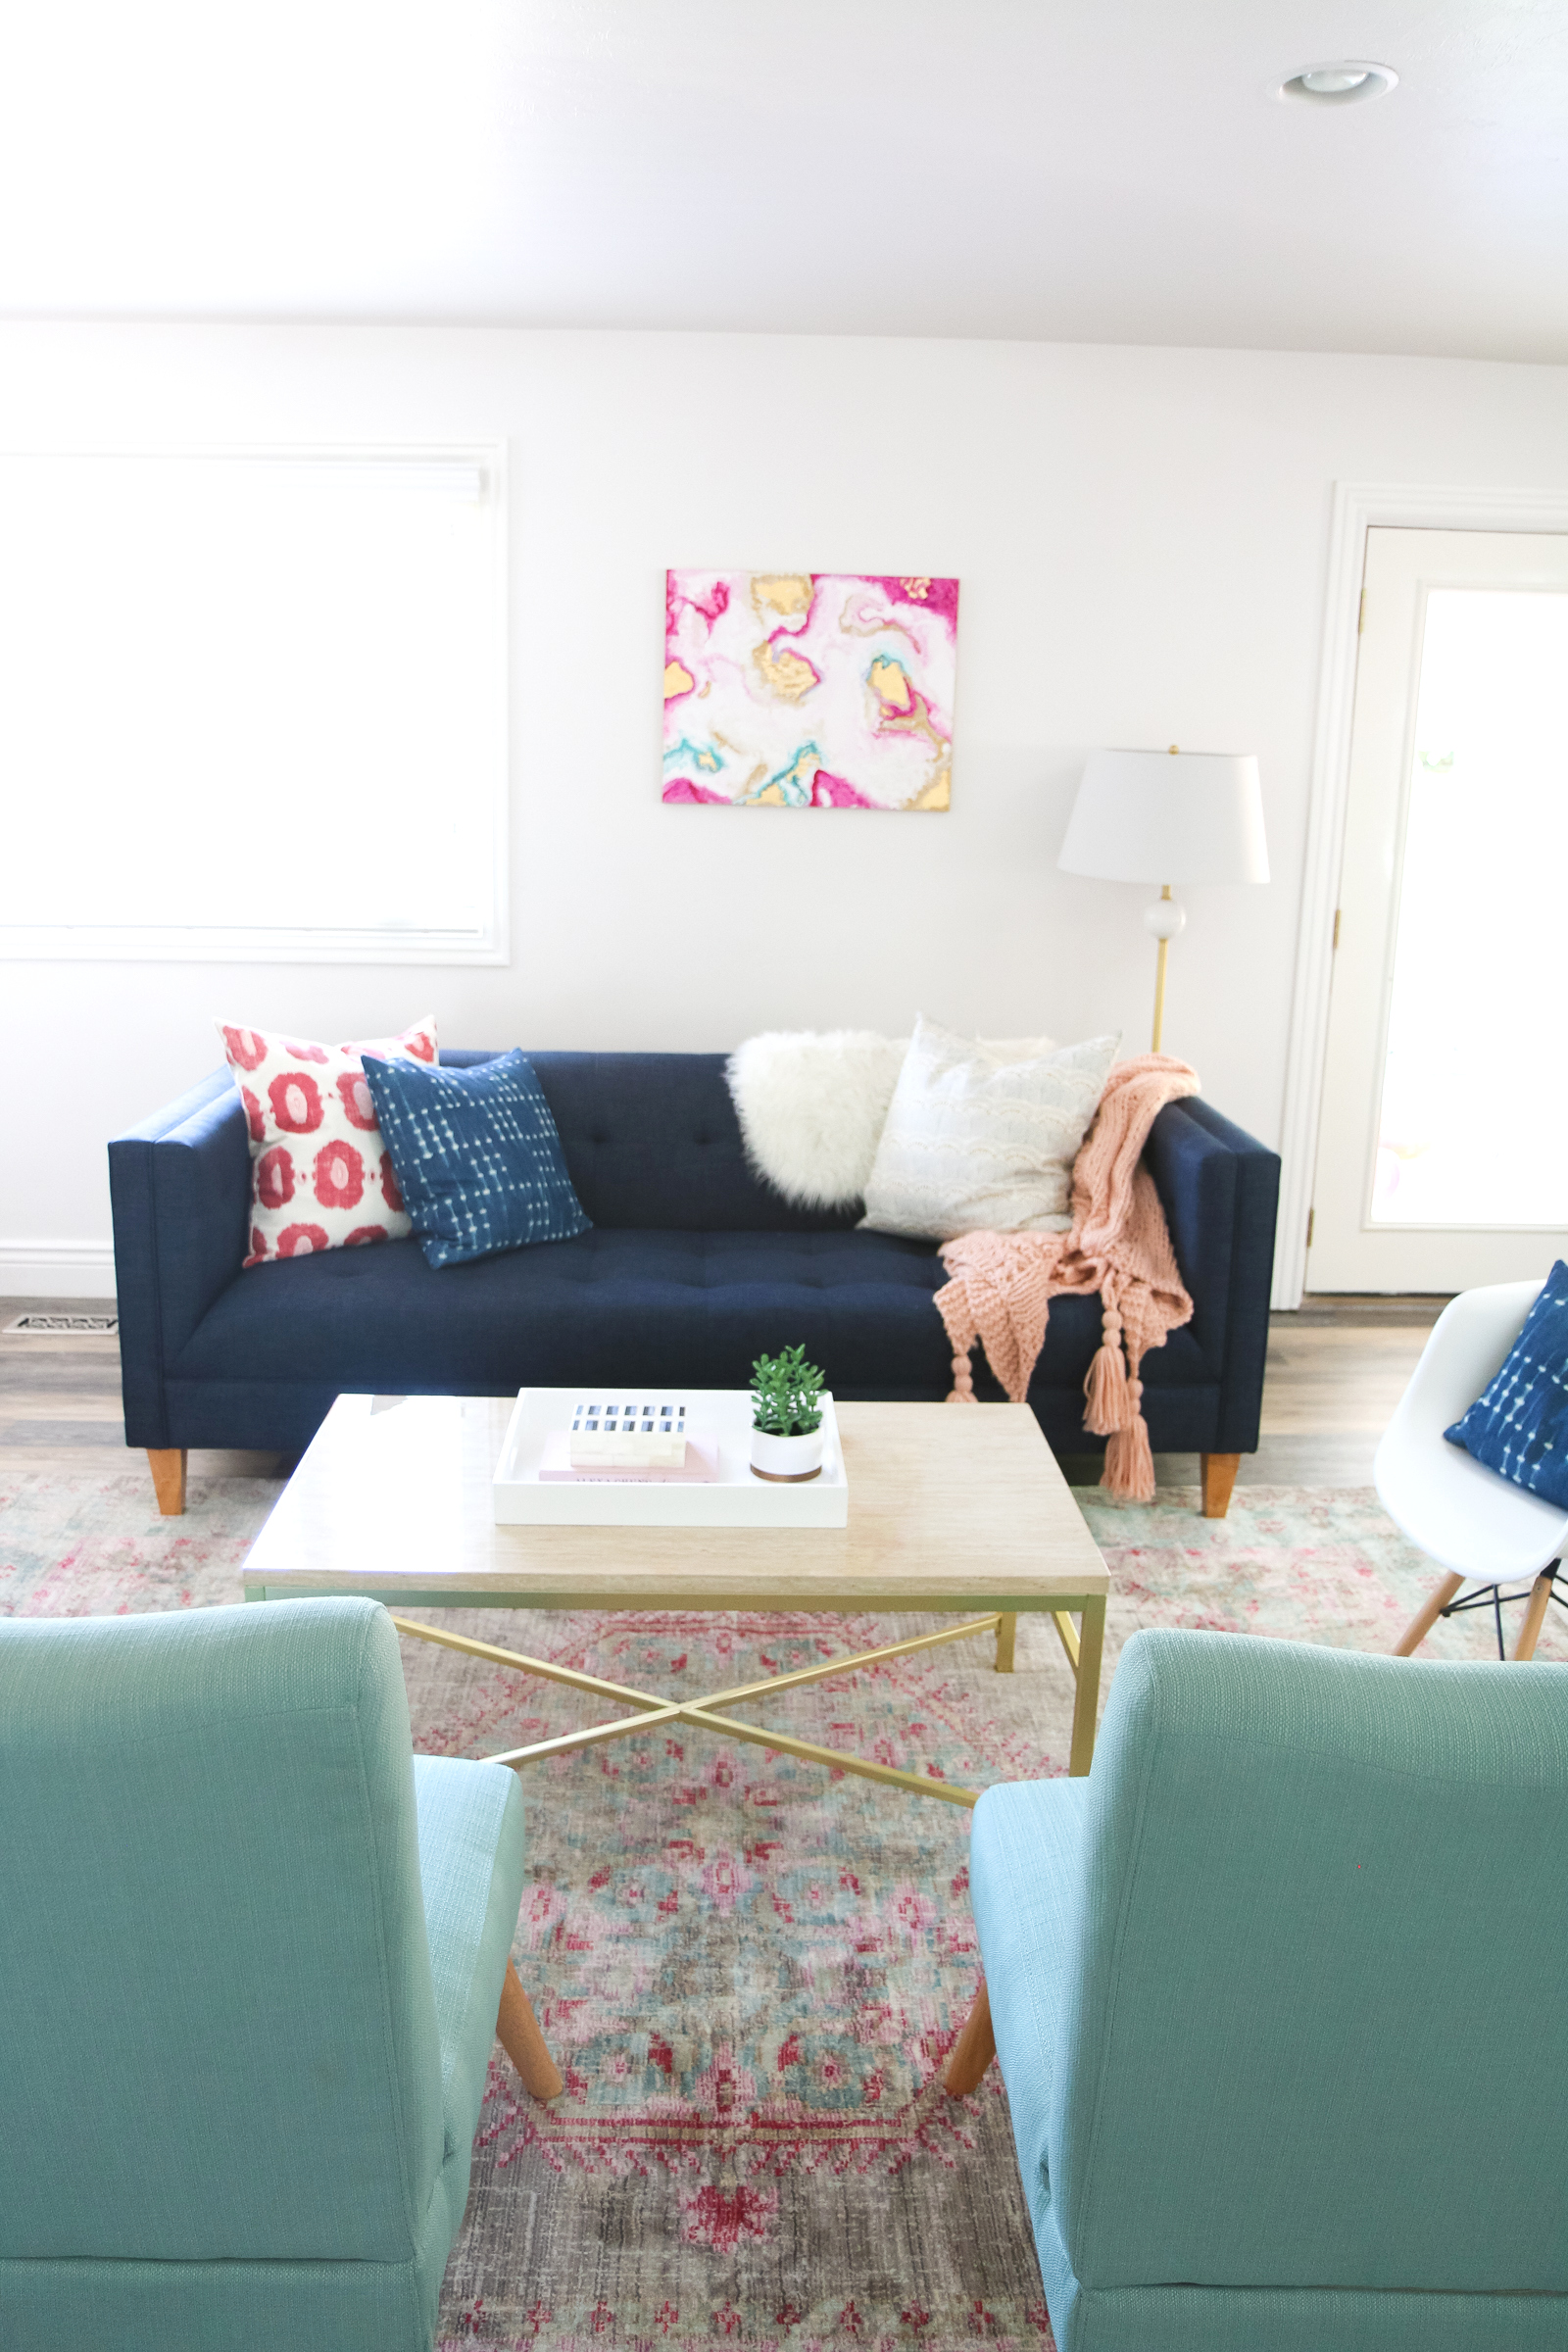 Our New Home Big Reveal: How We Styled Our Navy Couch by popular Utah blogger Sandy A La Mode